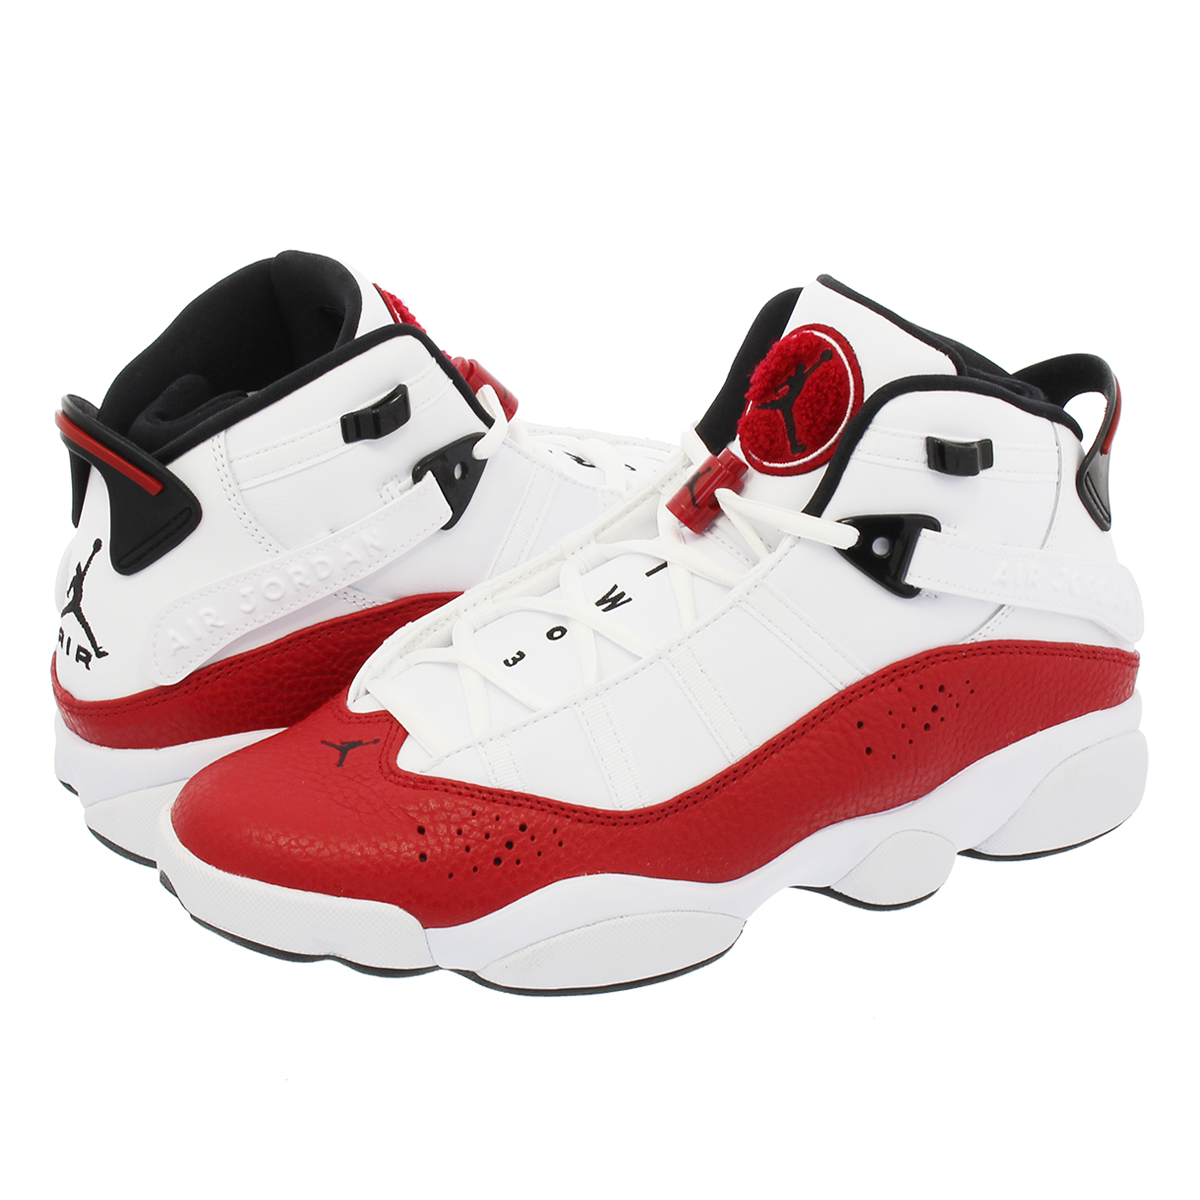 official photos 4a51e 2d7b9 NIKE AIR JORDAN 6 RINGS Nike Air Jordan 6 RINGS Co.,Ltd. WHITE/UNIVERSITY  RED/BLACK